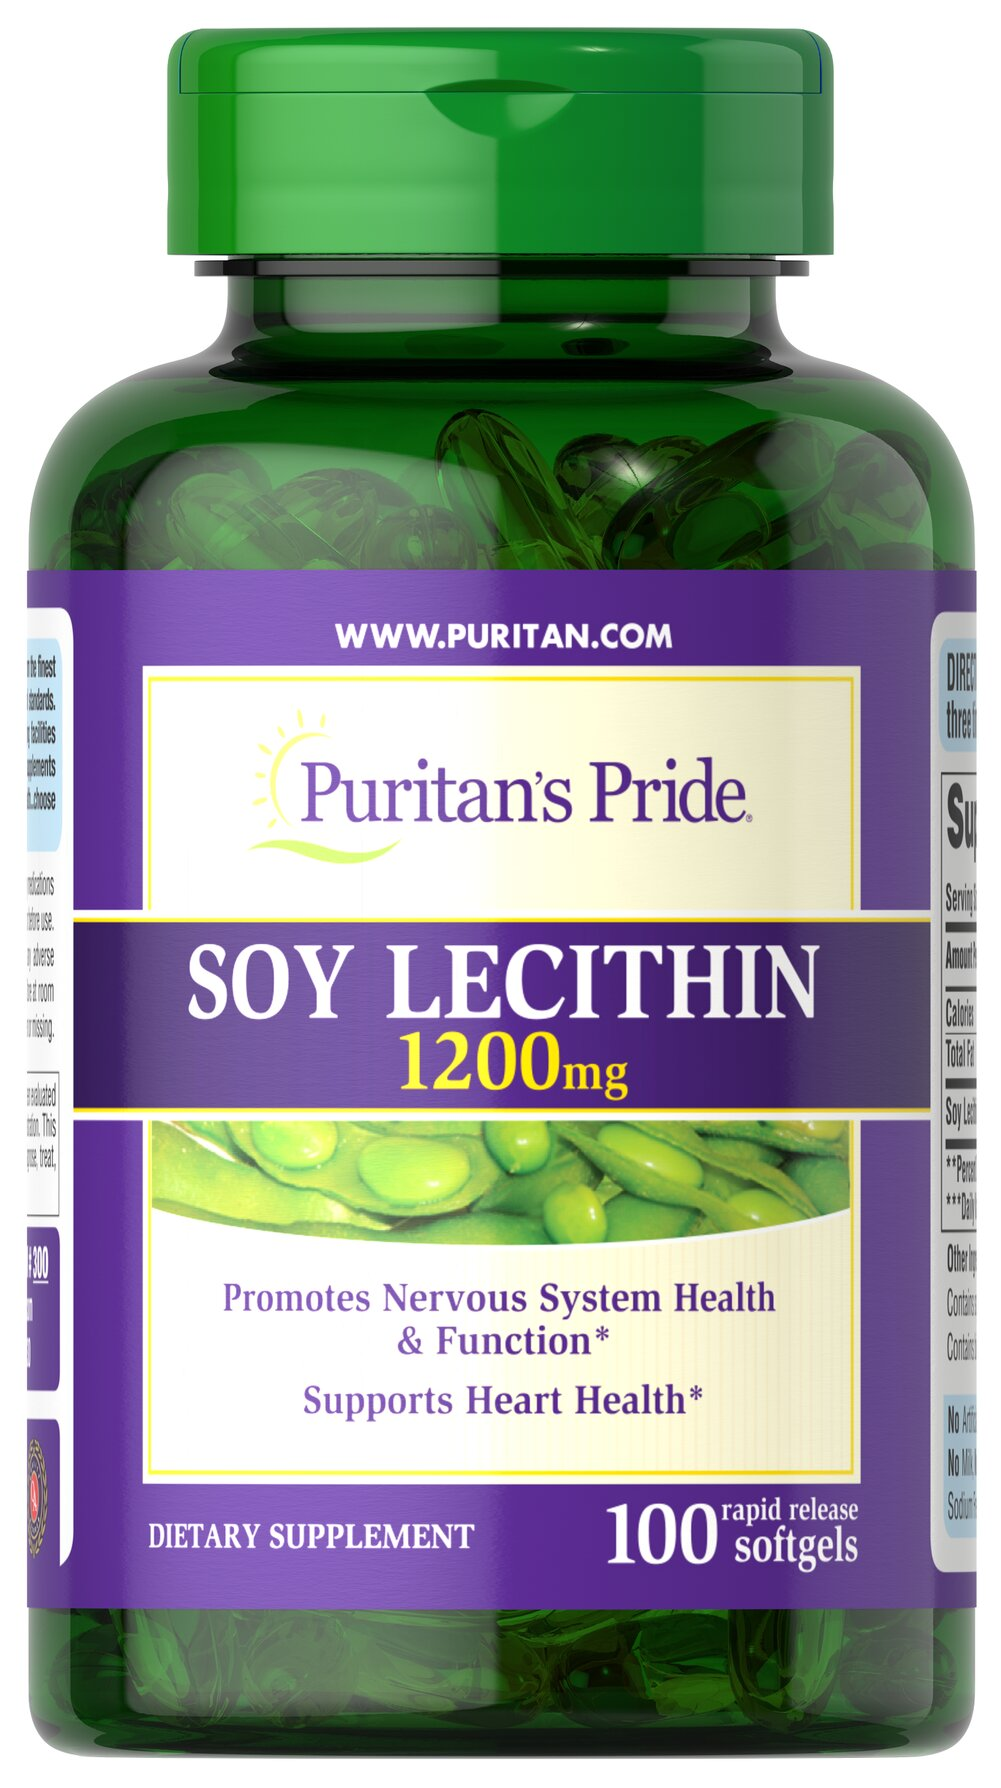 Soy Lecithin 1200 mg  100 Rapid Release Softgels 1200 mg $13.49